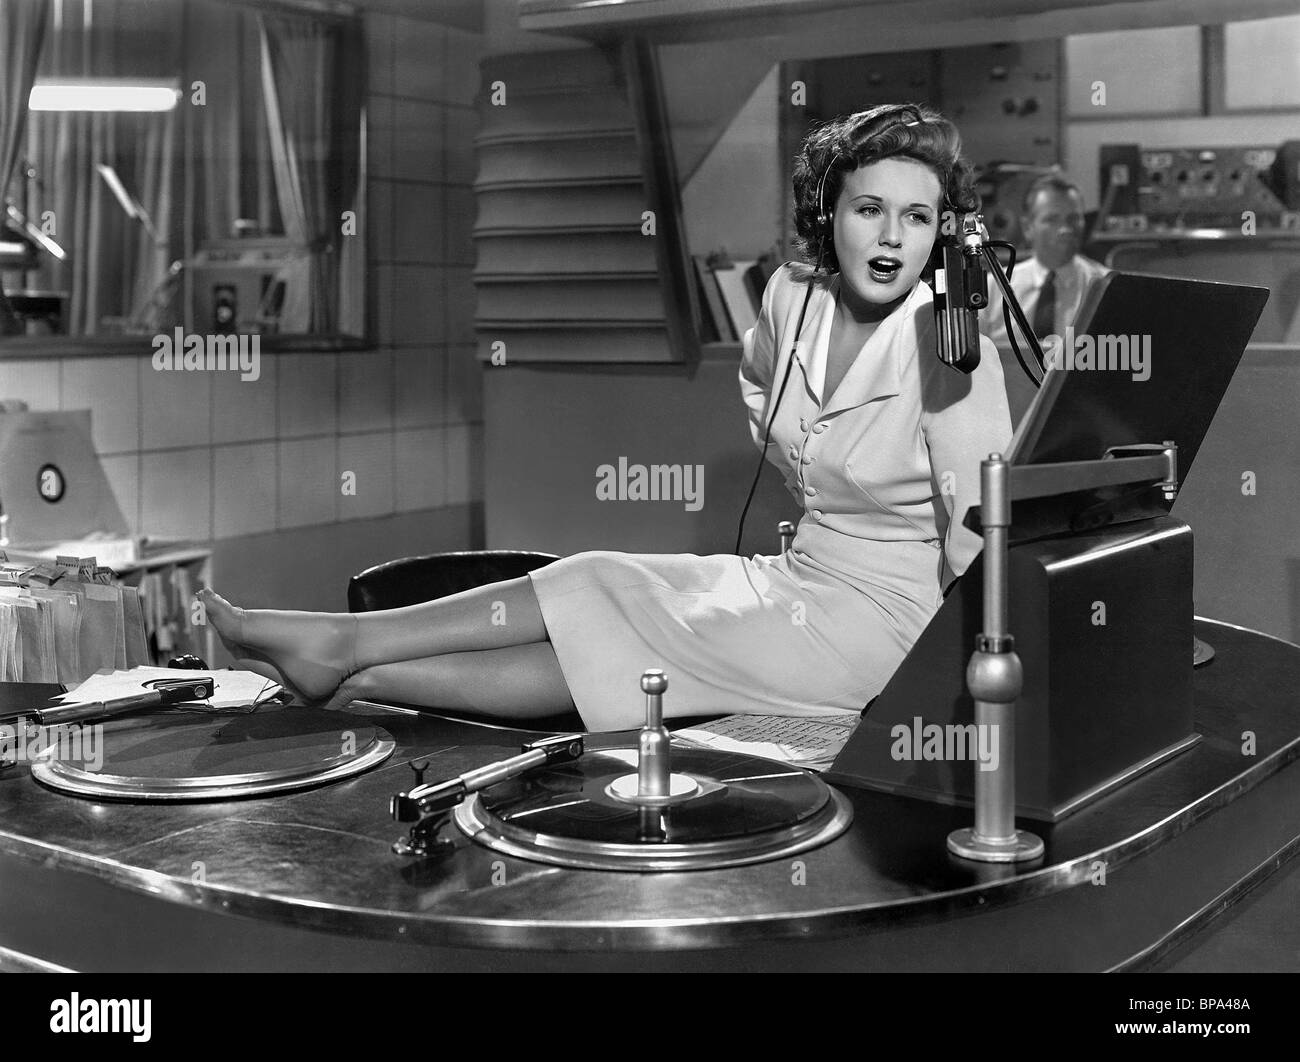 DEANNA DURBIN SOMETHING IN THE WIND (1947) - Stock Image